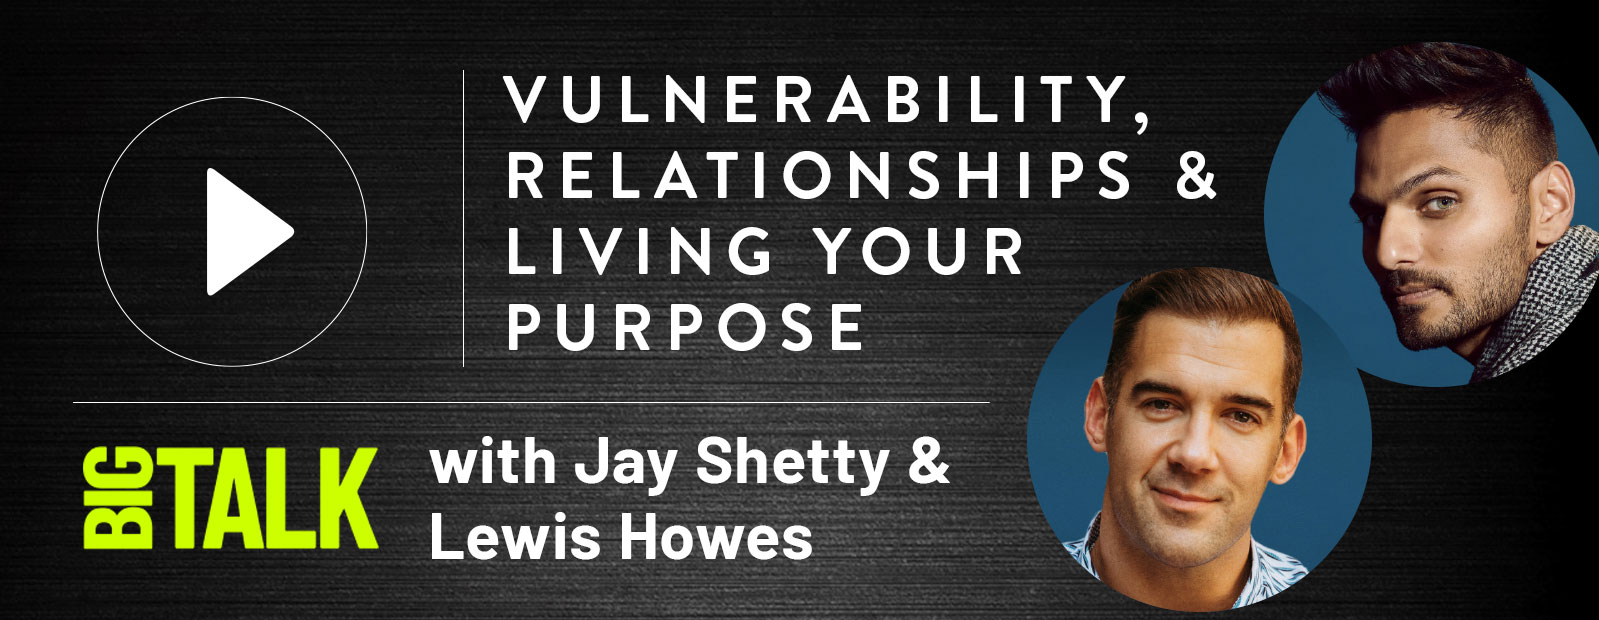 Vulnerability, Relationships & Living your Purpose — Big Talk with Jay Shetty & Lewis Howes